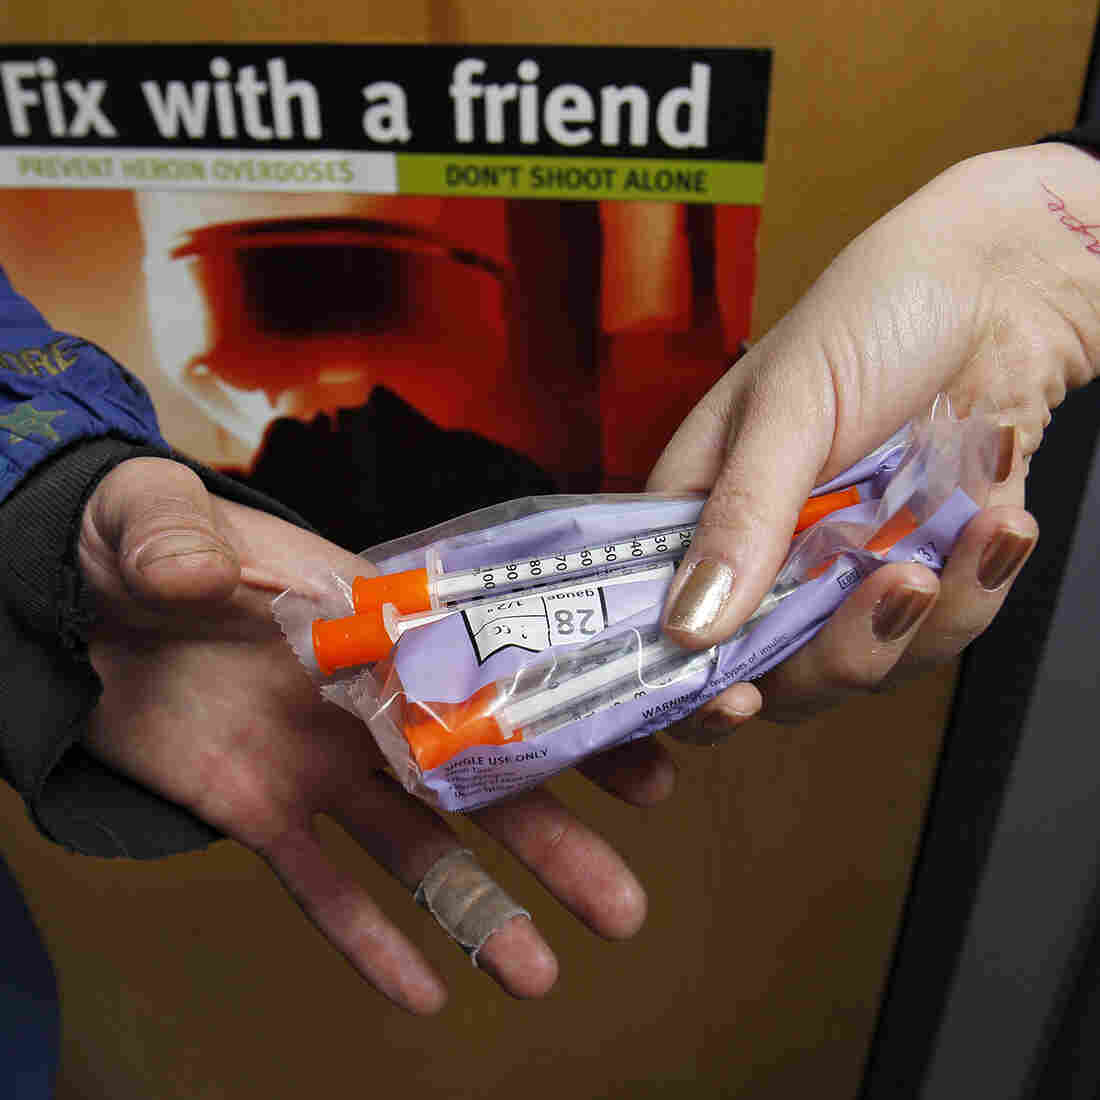 Needle exchange programs, like this one in Portland, Maine, offer free, sterile syringes and needles to drug users. The programs save money and lives, health officials say, by curtailing the spread of bloodborne infections, such as hepatitis and HIV.